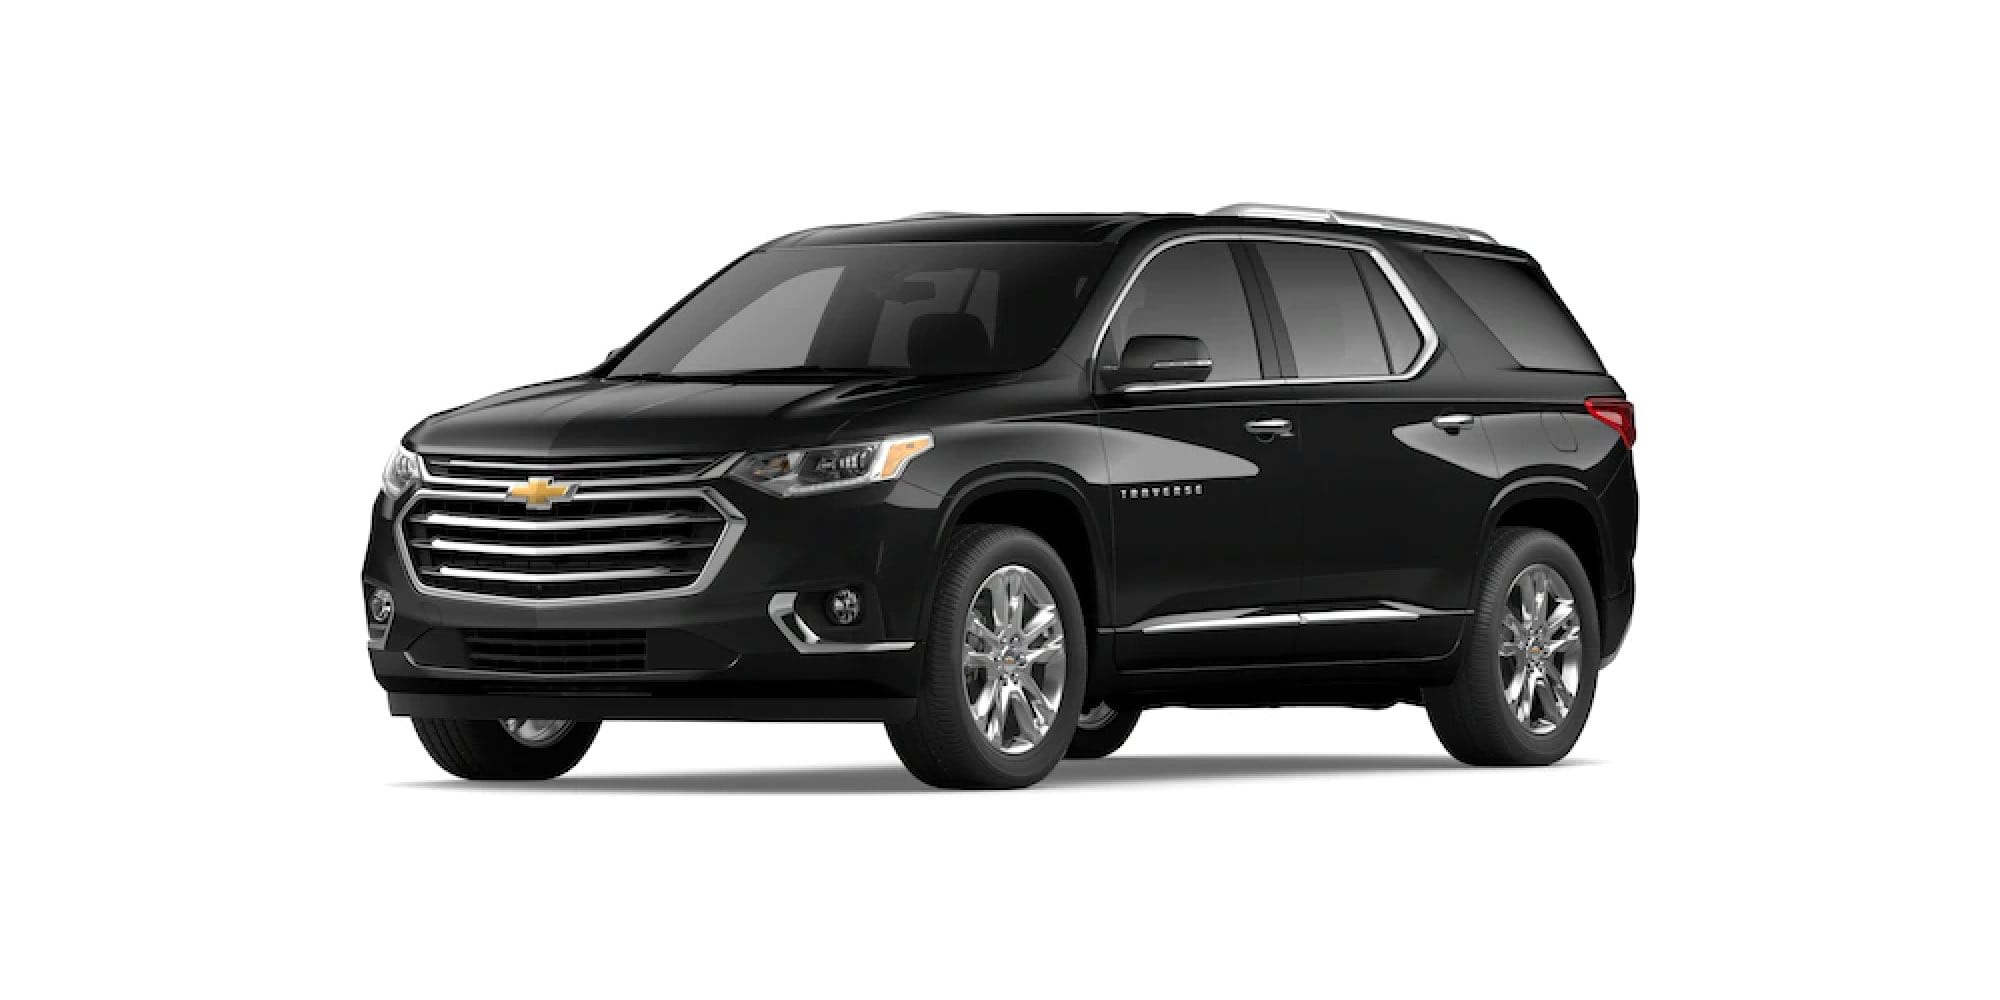 2021 Chevy Traverse in Mosaic Black Metallic